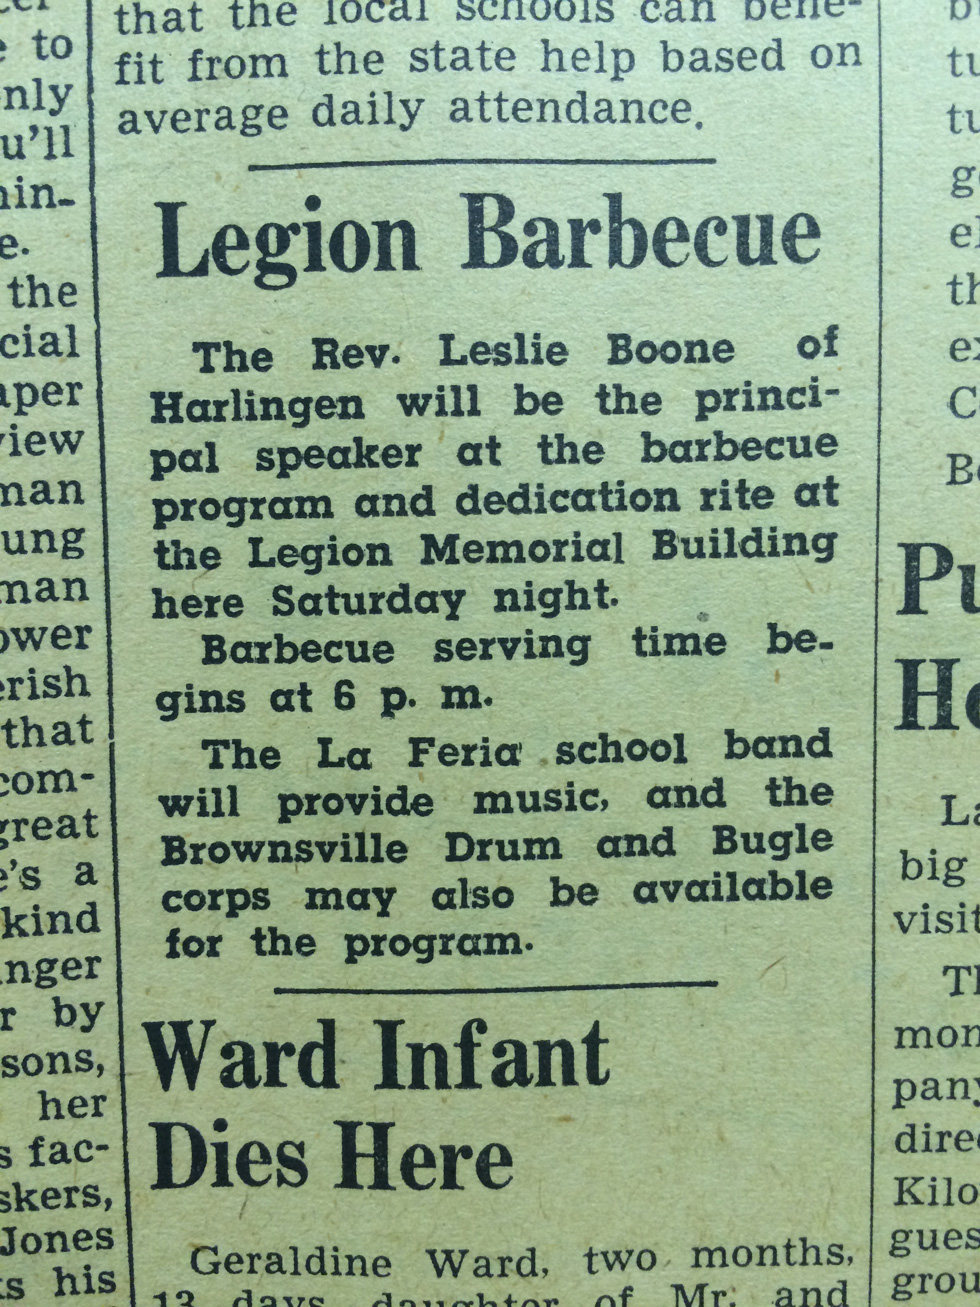 This small announcement was on the front page of the October 13, 1949 issue of LA FERIA NEWS advertising the dedication of the American Legion Post Memorial building on Saturday, October 15, 1949. Photo: LFN Archives.